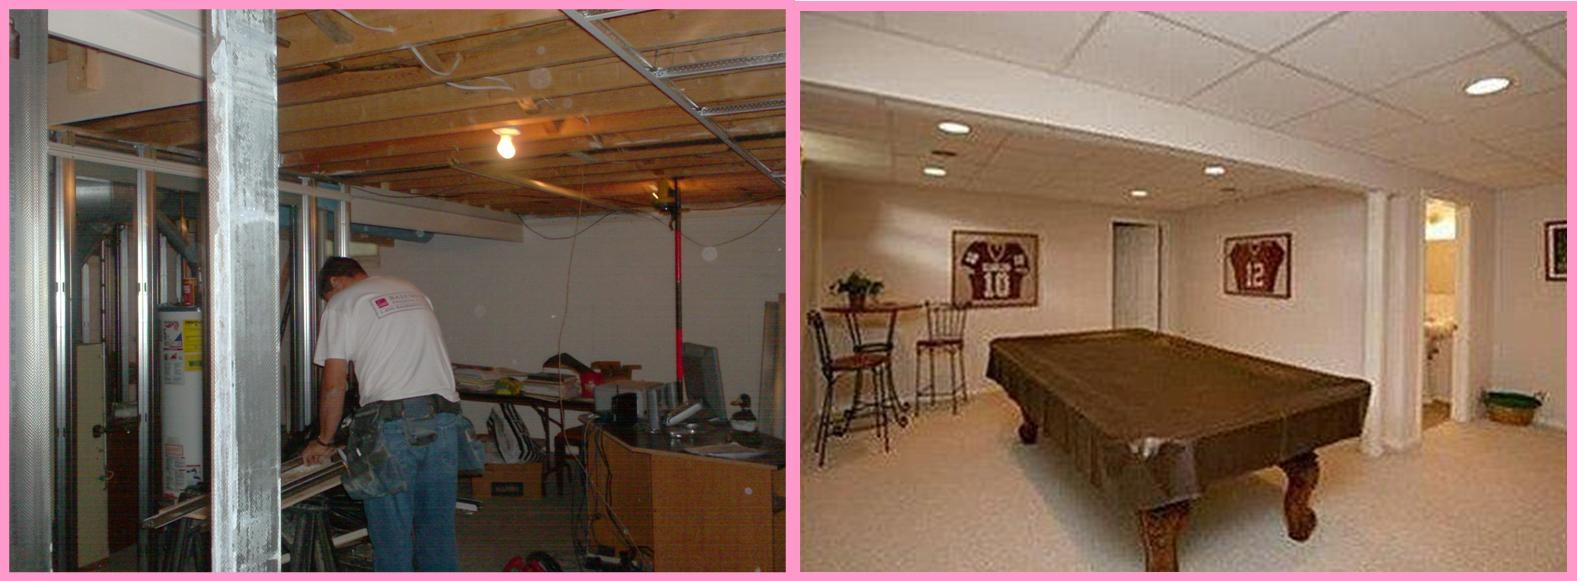 Finished Basements Before And After Basement